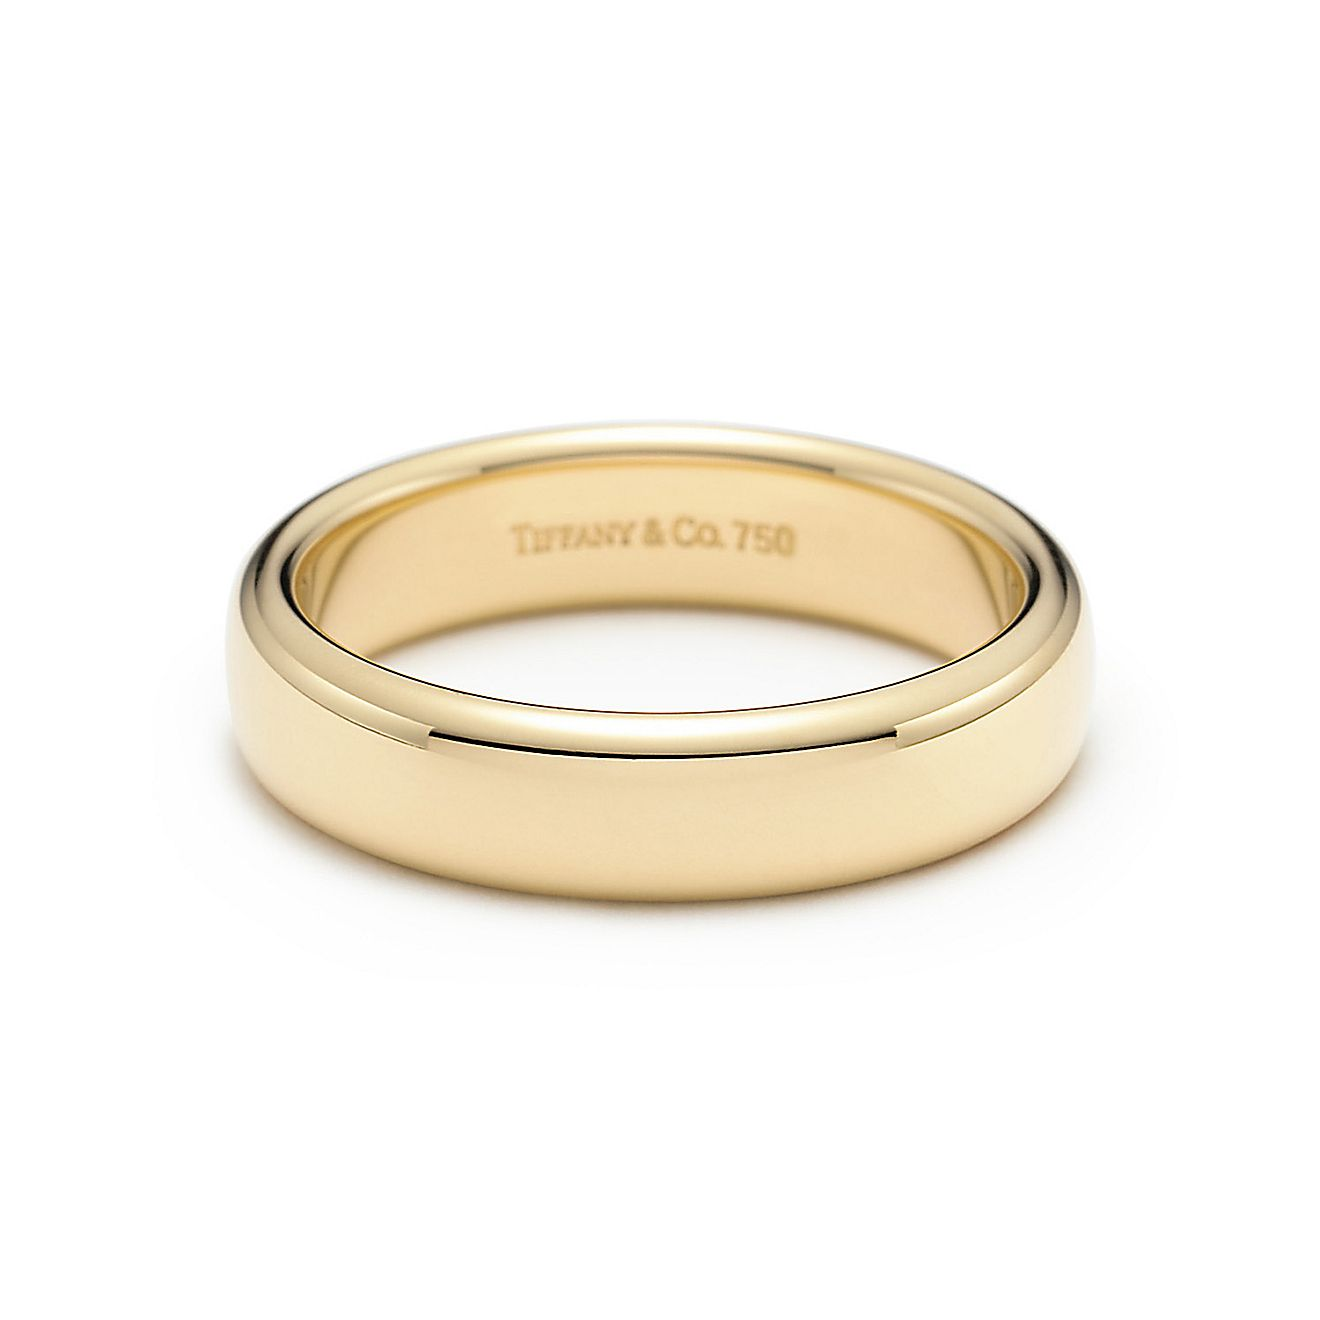 ... tiffany creation of incomparable beauty wedding band ring in 18k gold